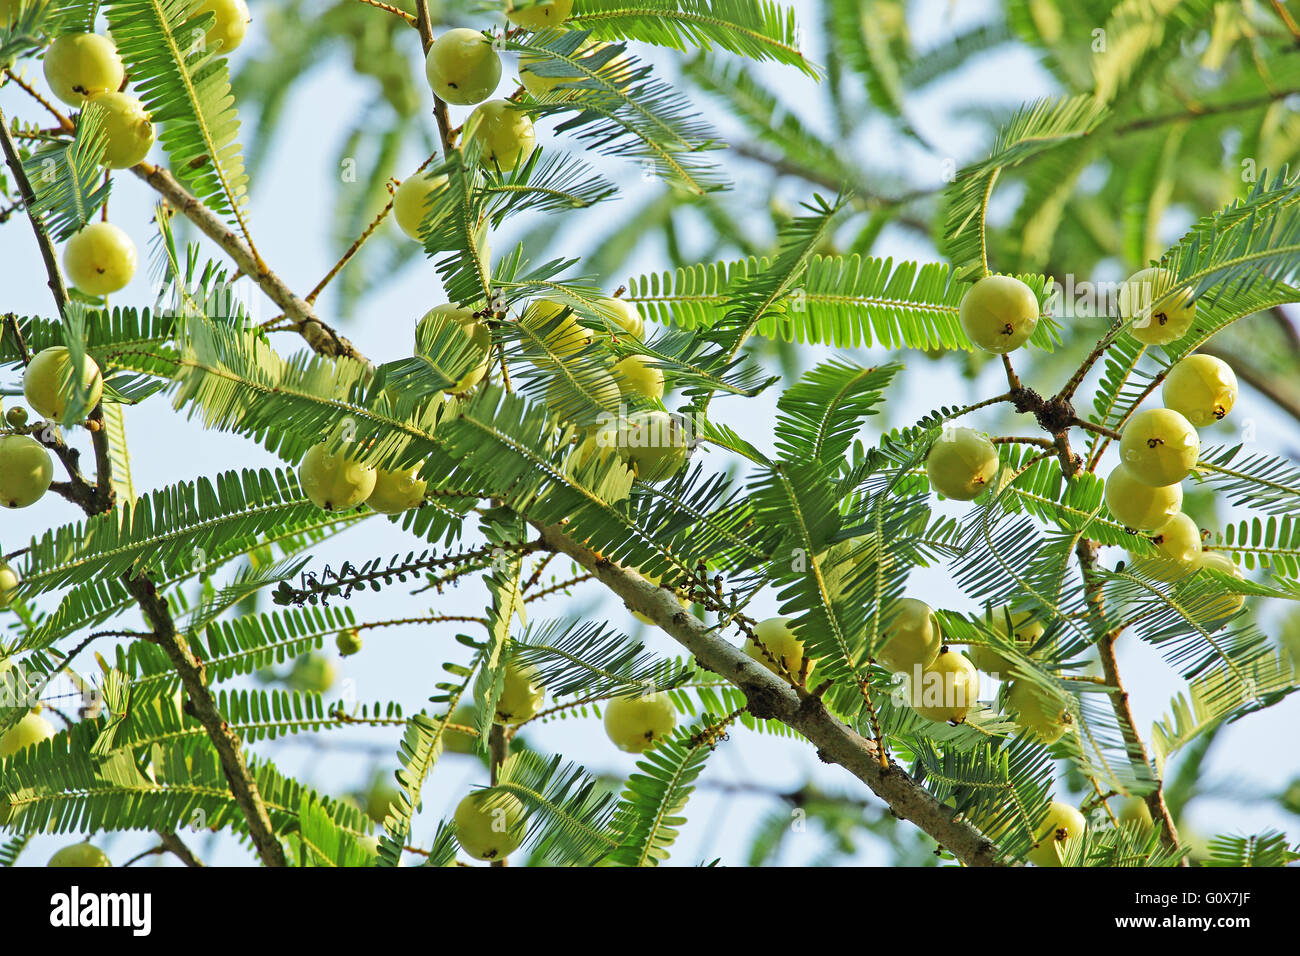 Ripening Indian gooseberry, Phyllanthus emblica, seeds in plant. Essential part of Indian ayurvedic medicines - Stock Image